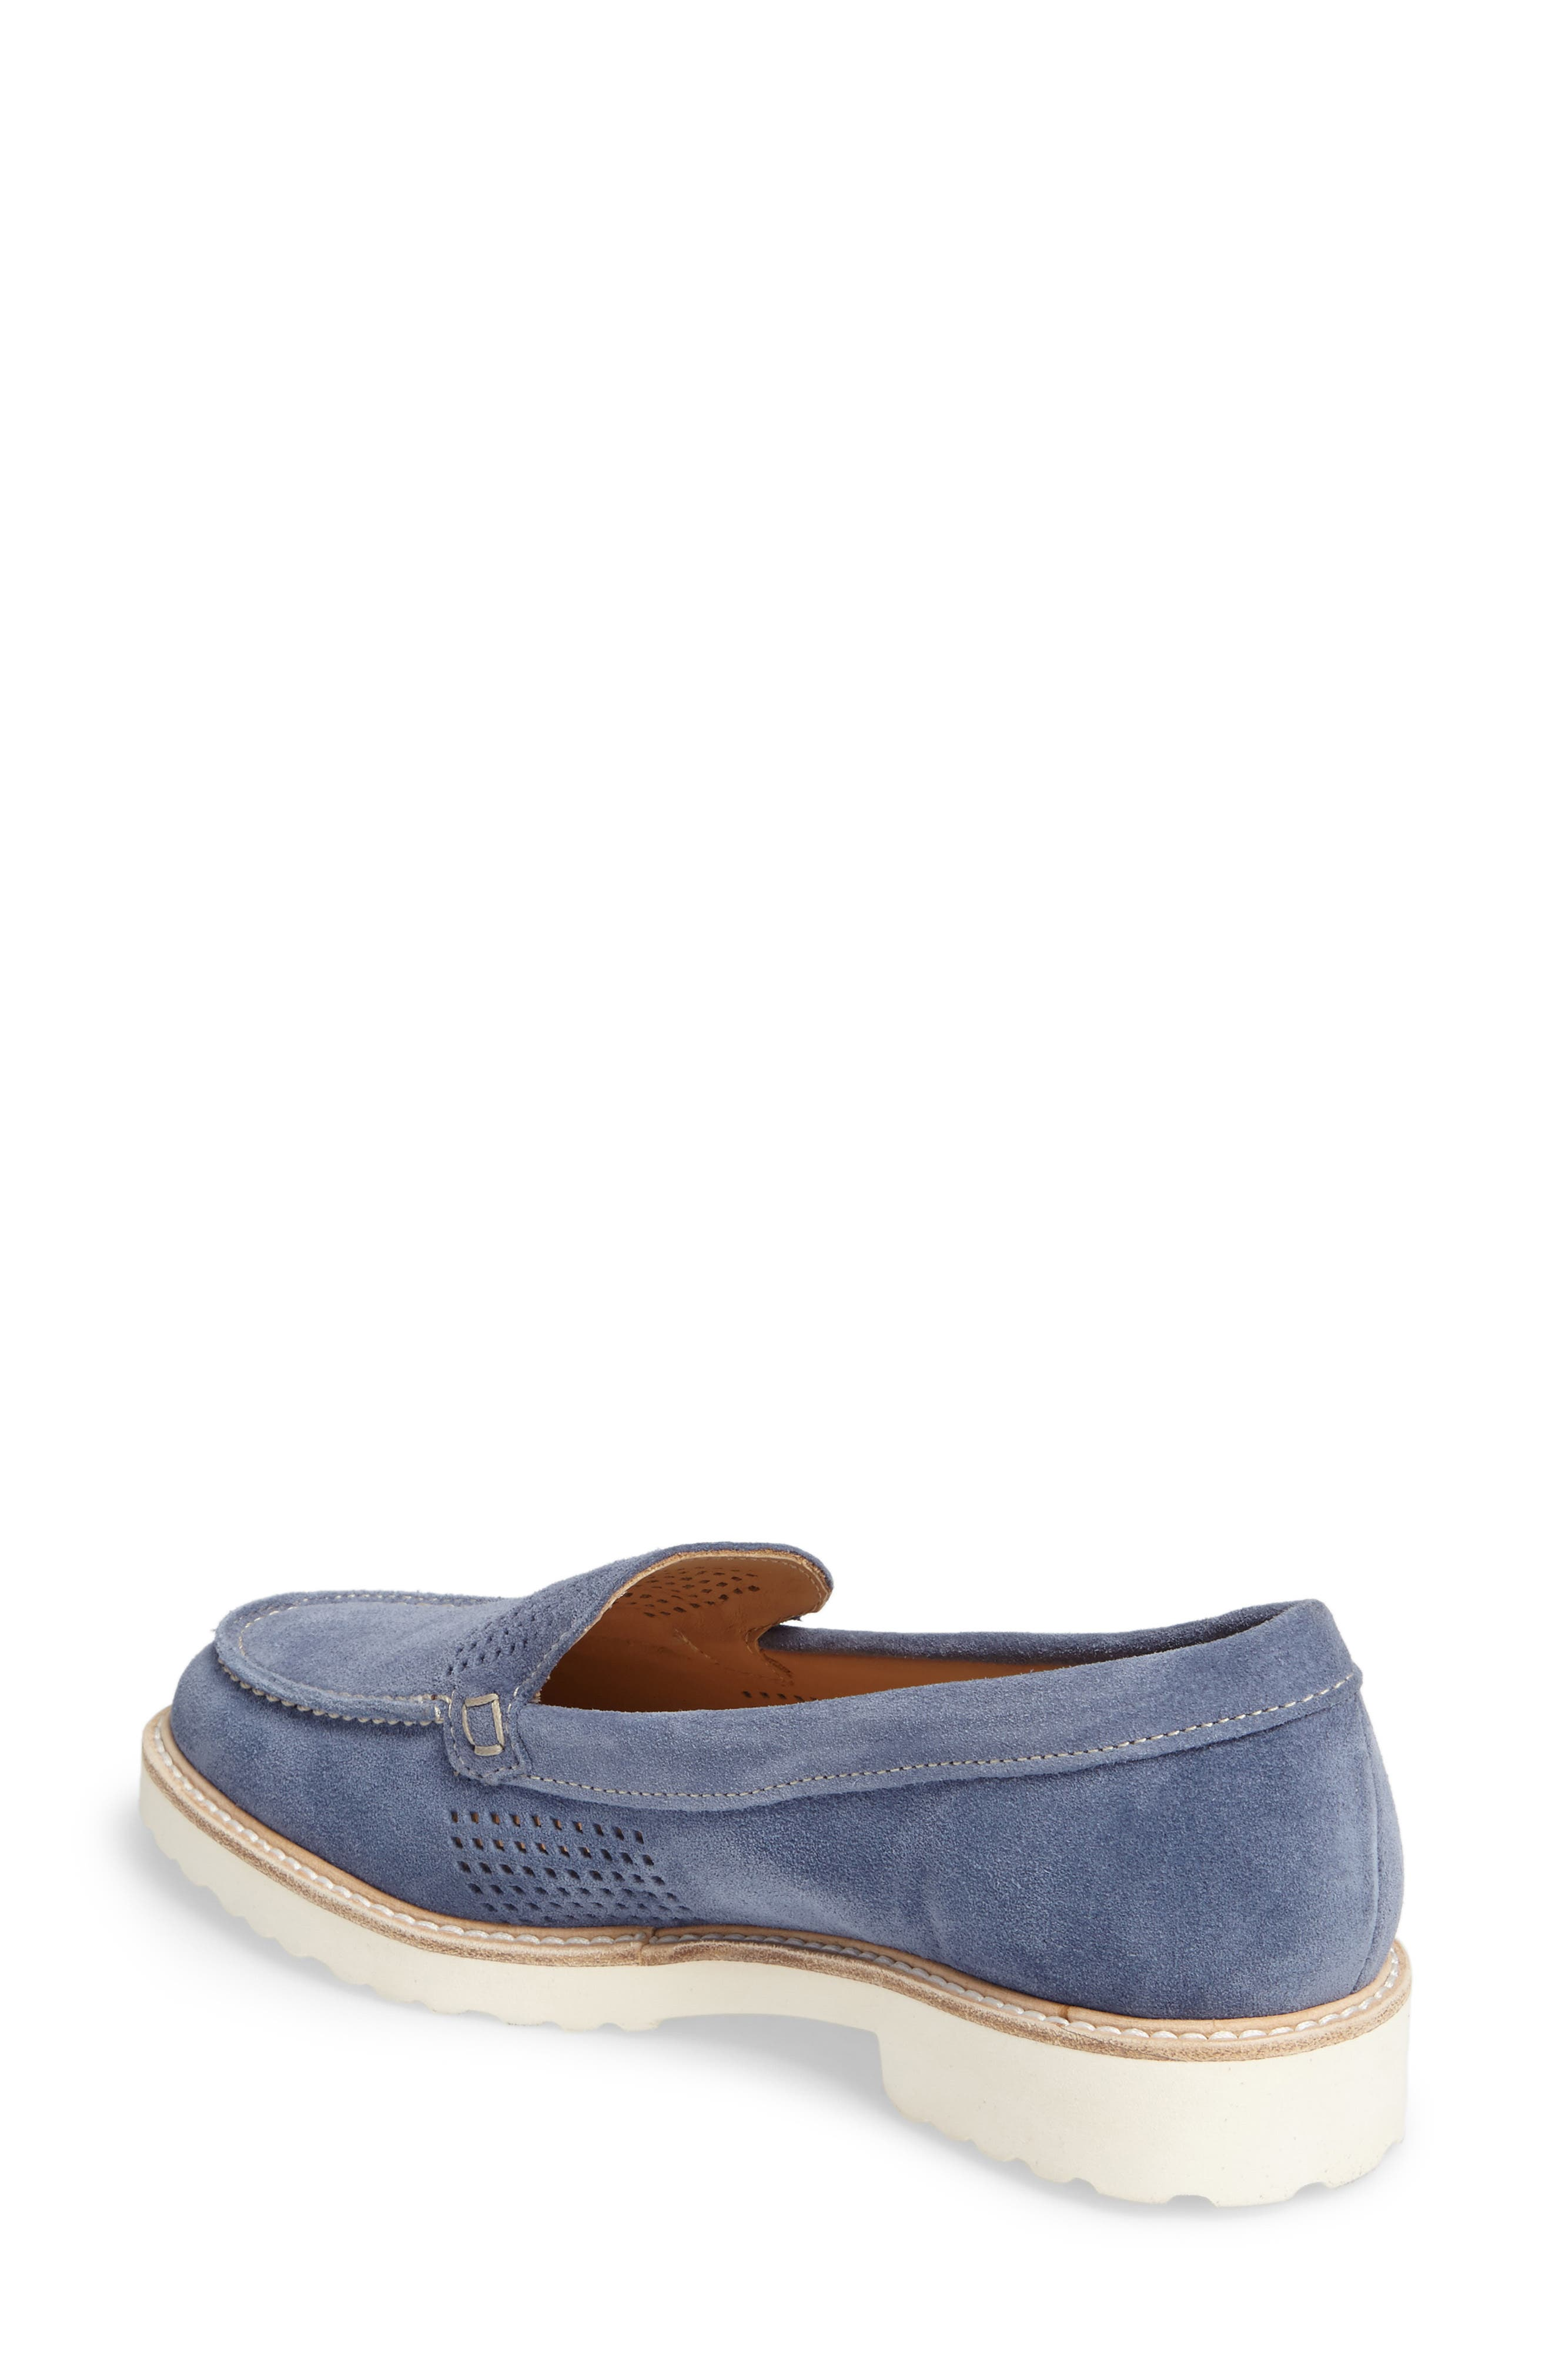 Wazzy Loafer,                             Alternate thumbnail 2, color,                             400